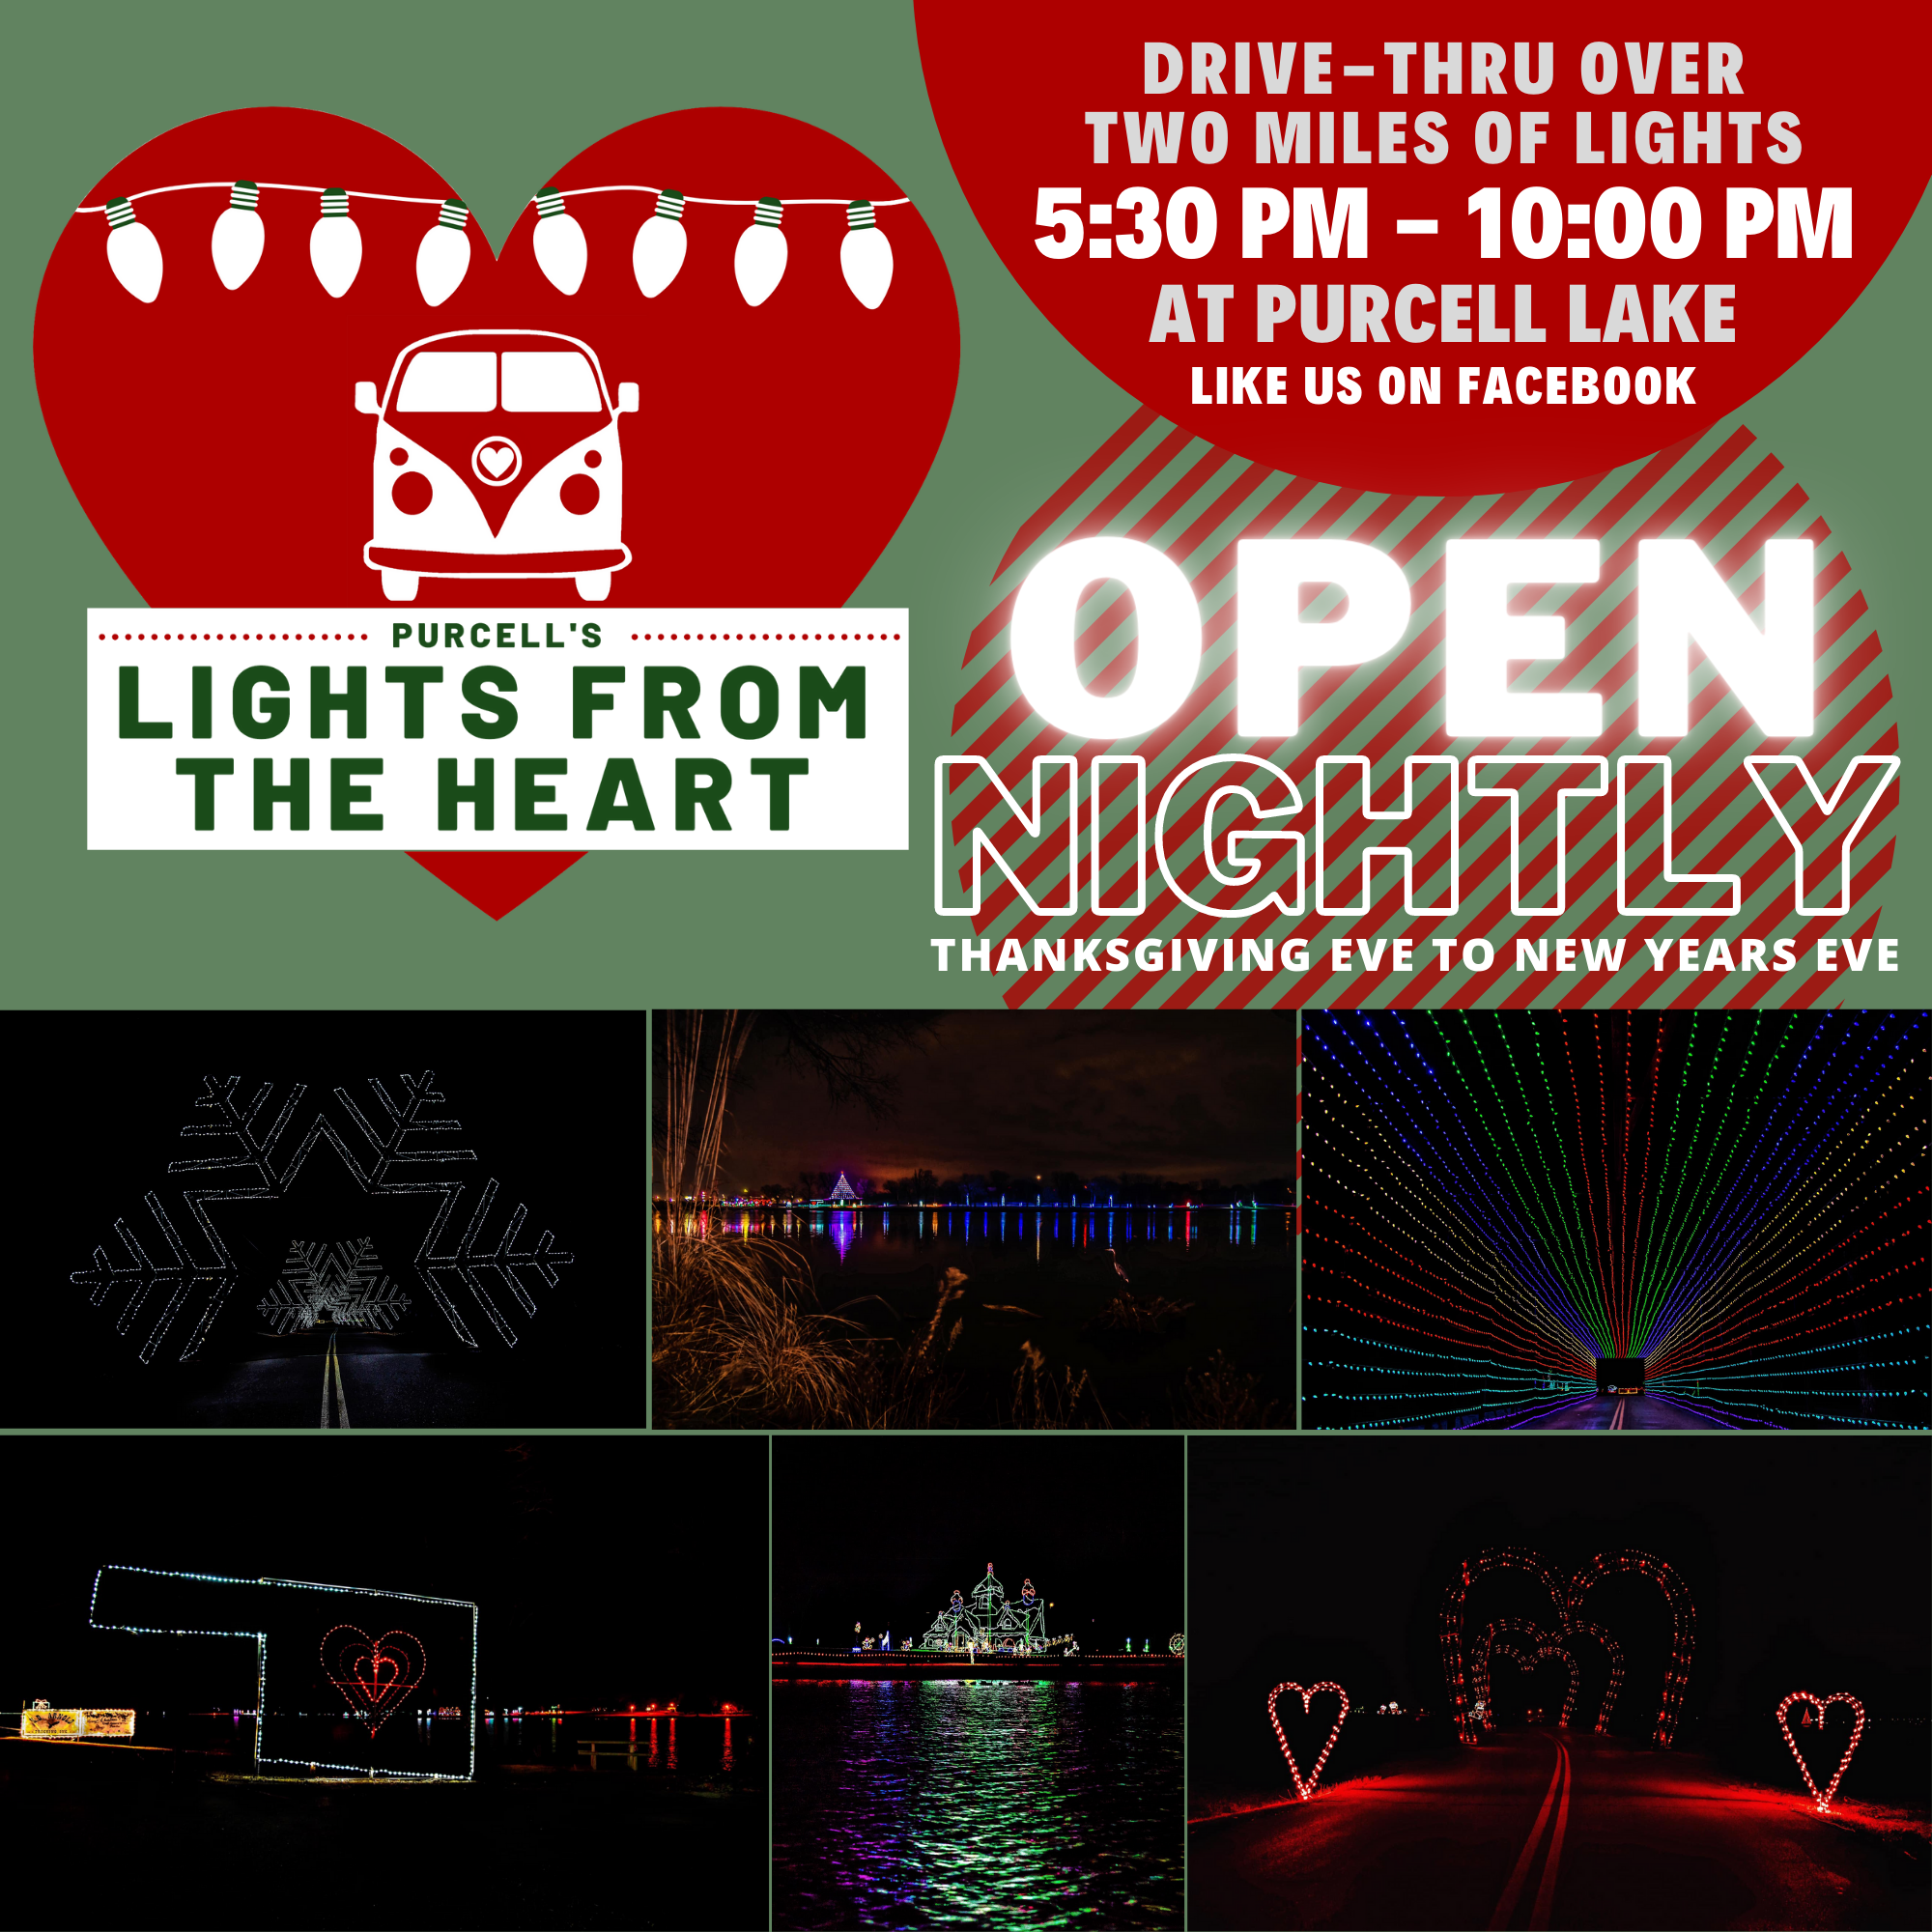 DRIVE-THRU-OVER-TWO-MILES-OF-LIGHTS-(1).png